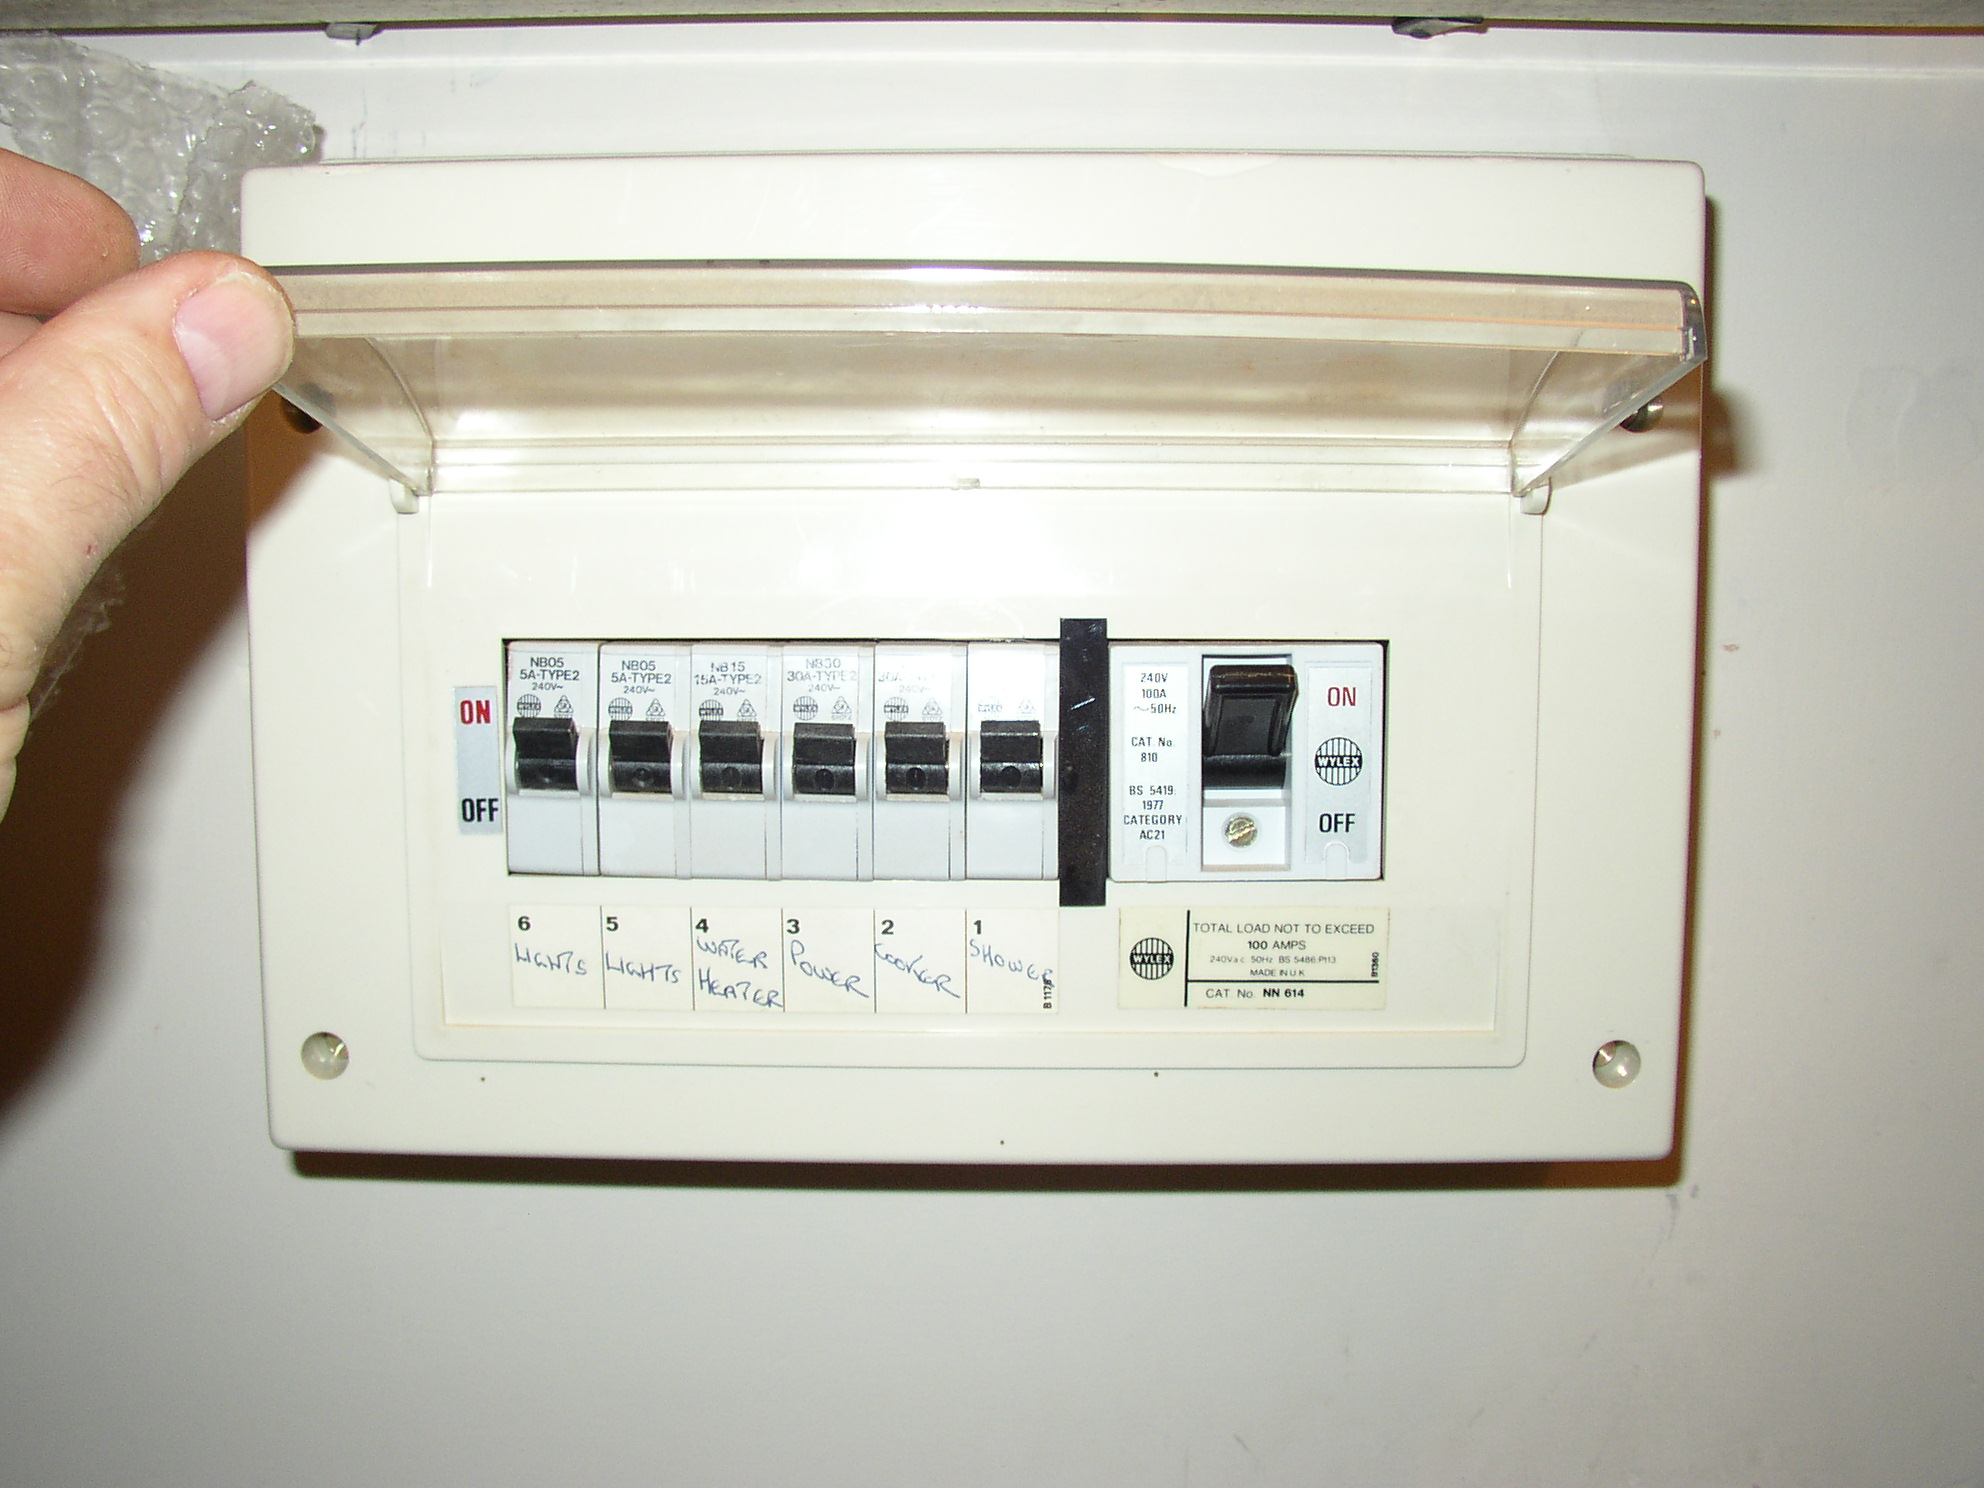 The Wylex consumer unit concerned (.jpg - 574kB).